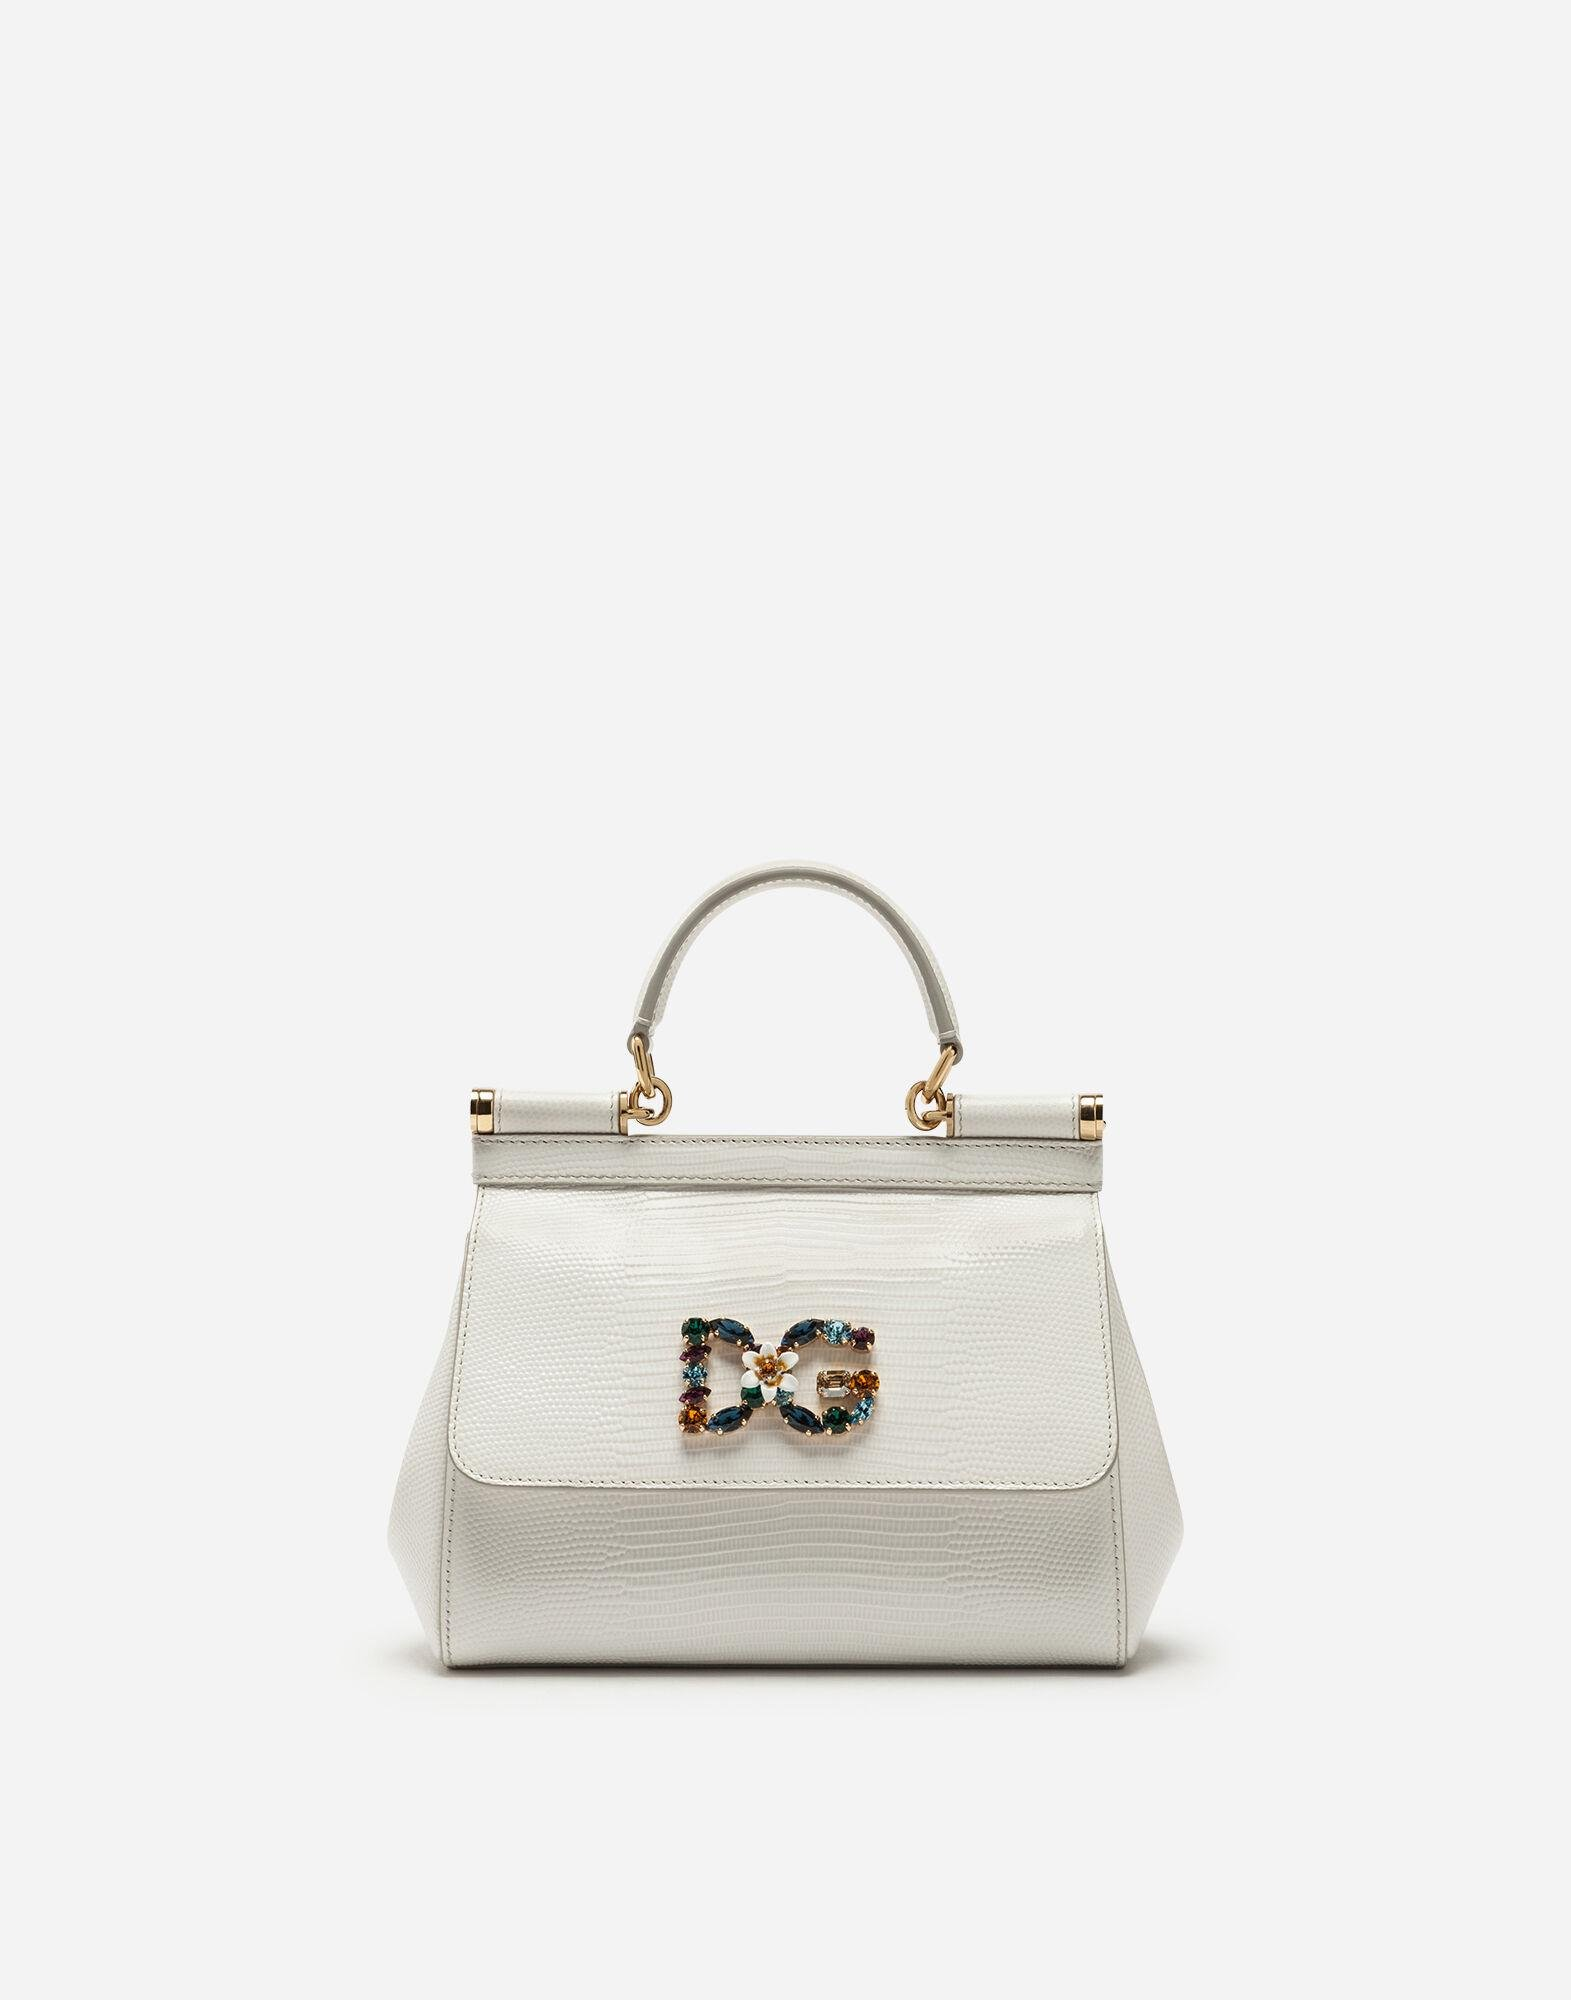 Small calfskin Sicily bag with iguana-print and DG crystal logo patch